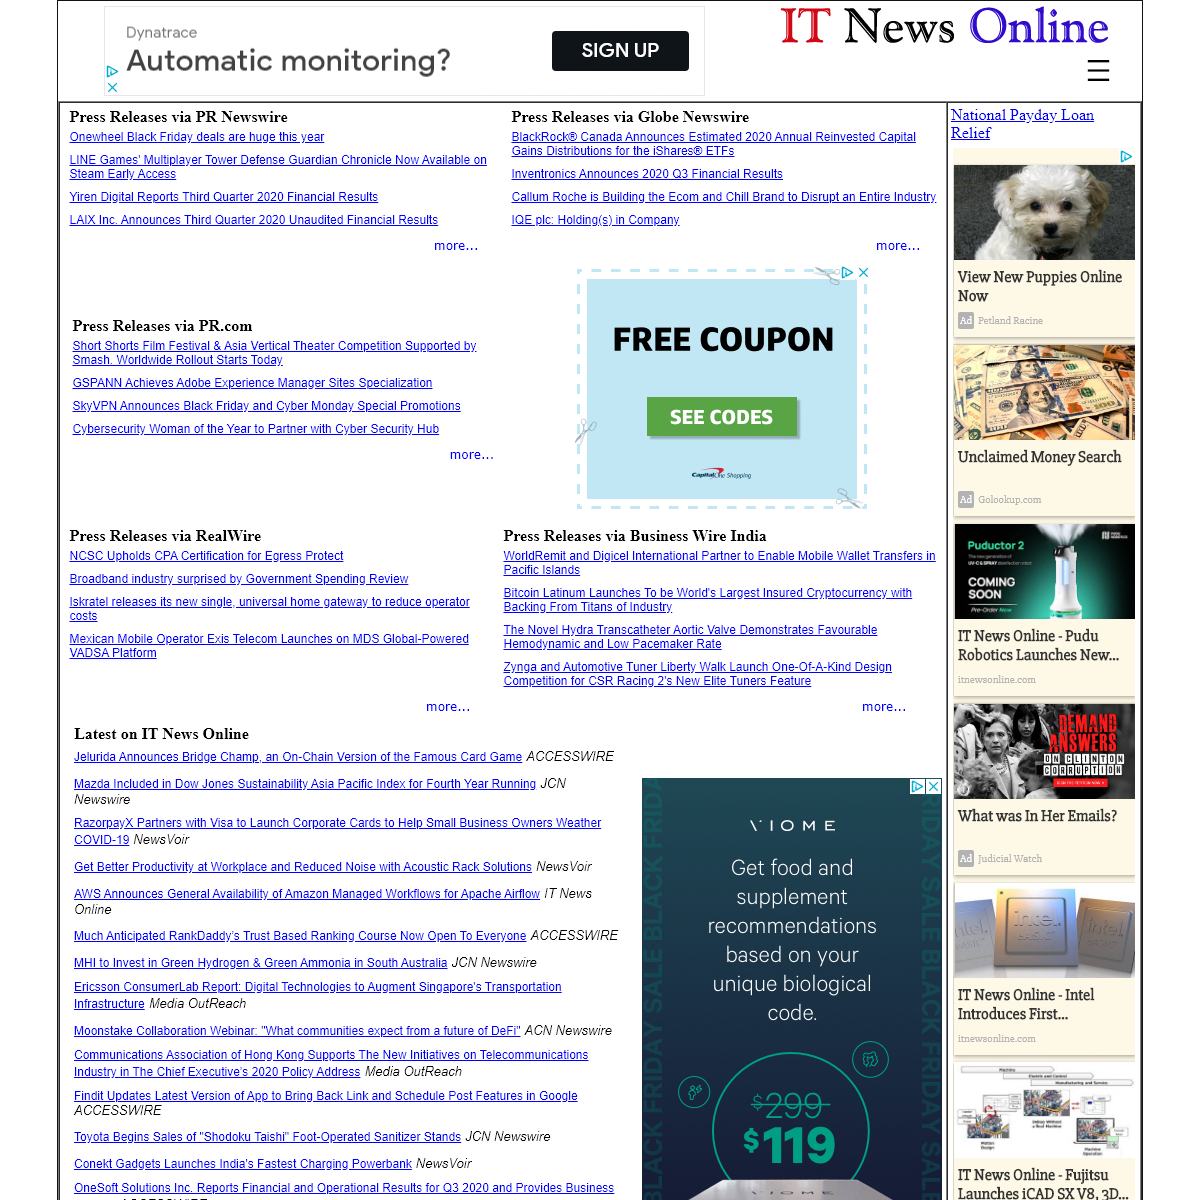 IT News Online